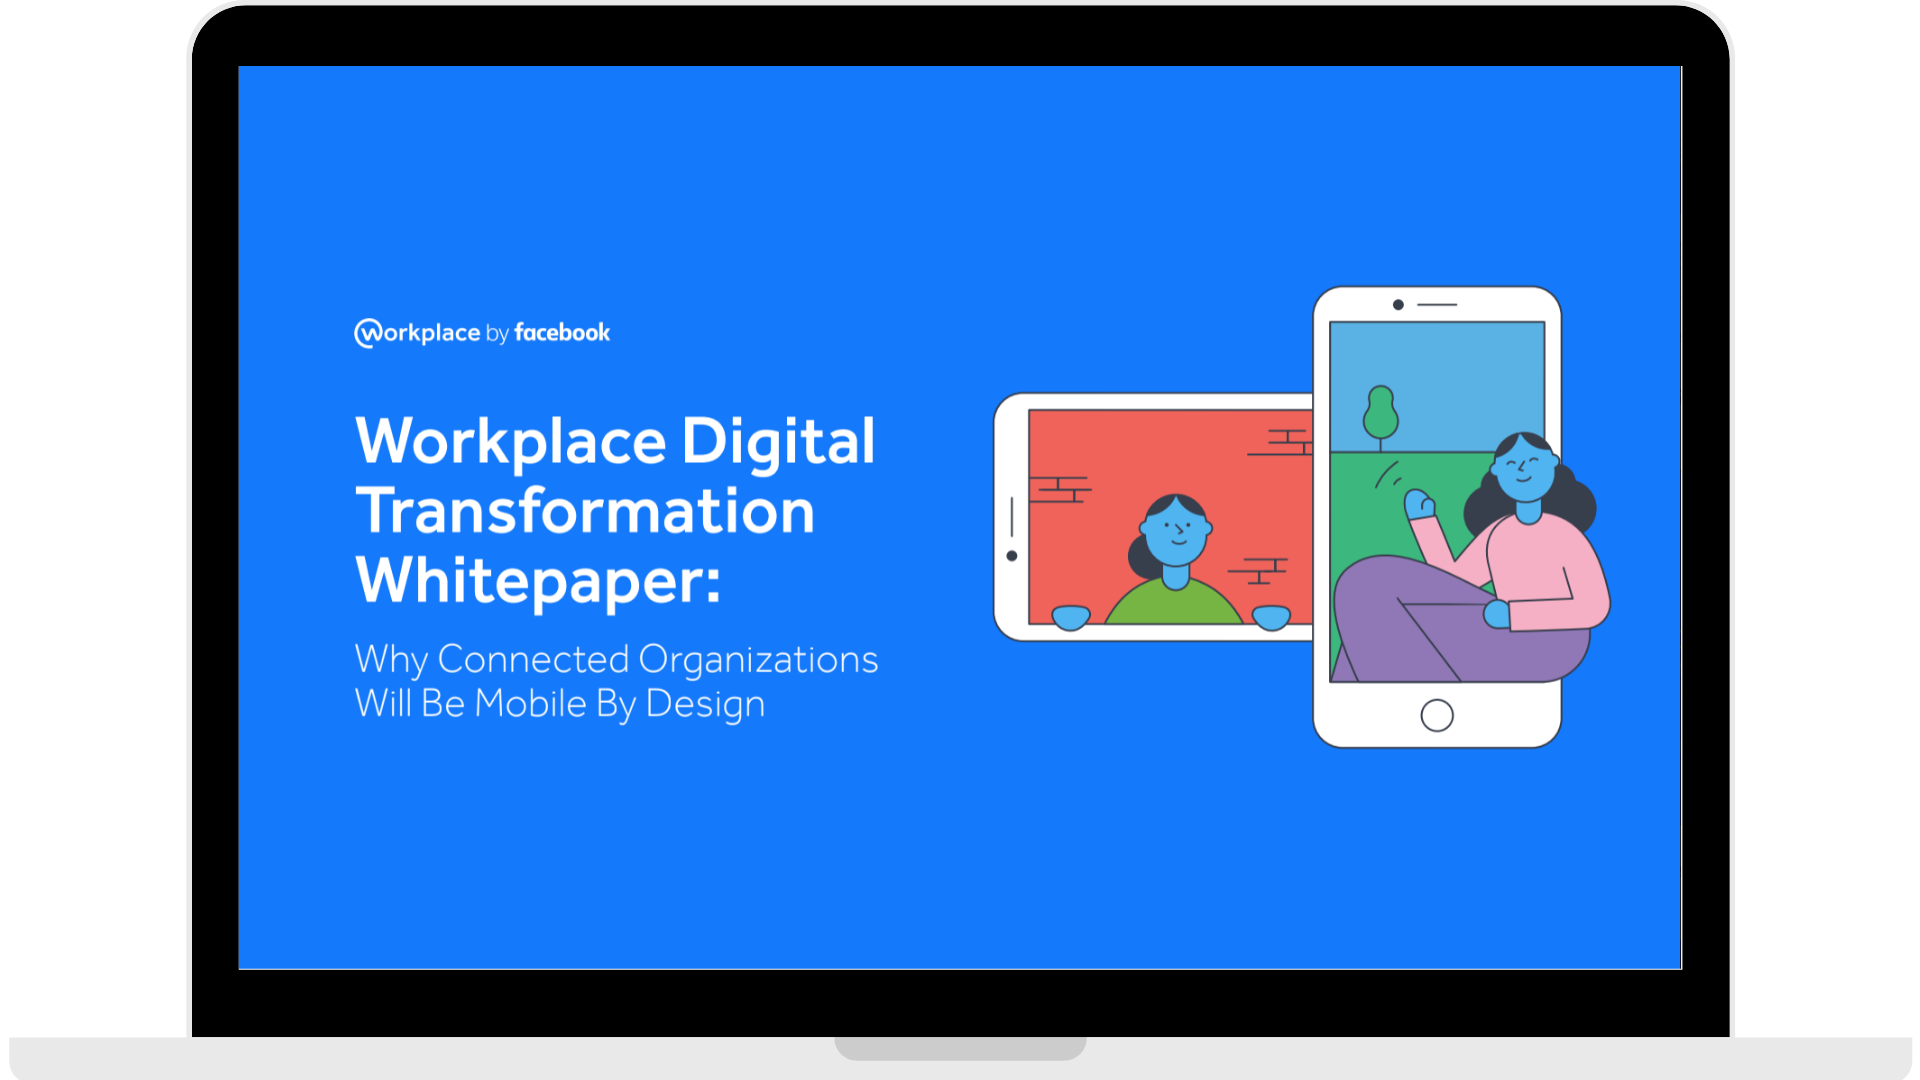 WPF - Whitepaper - Why Connected Organisations Will Be Mobile By Design - Laptop - Transparent